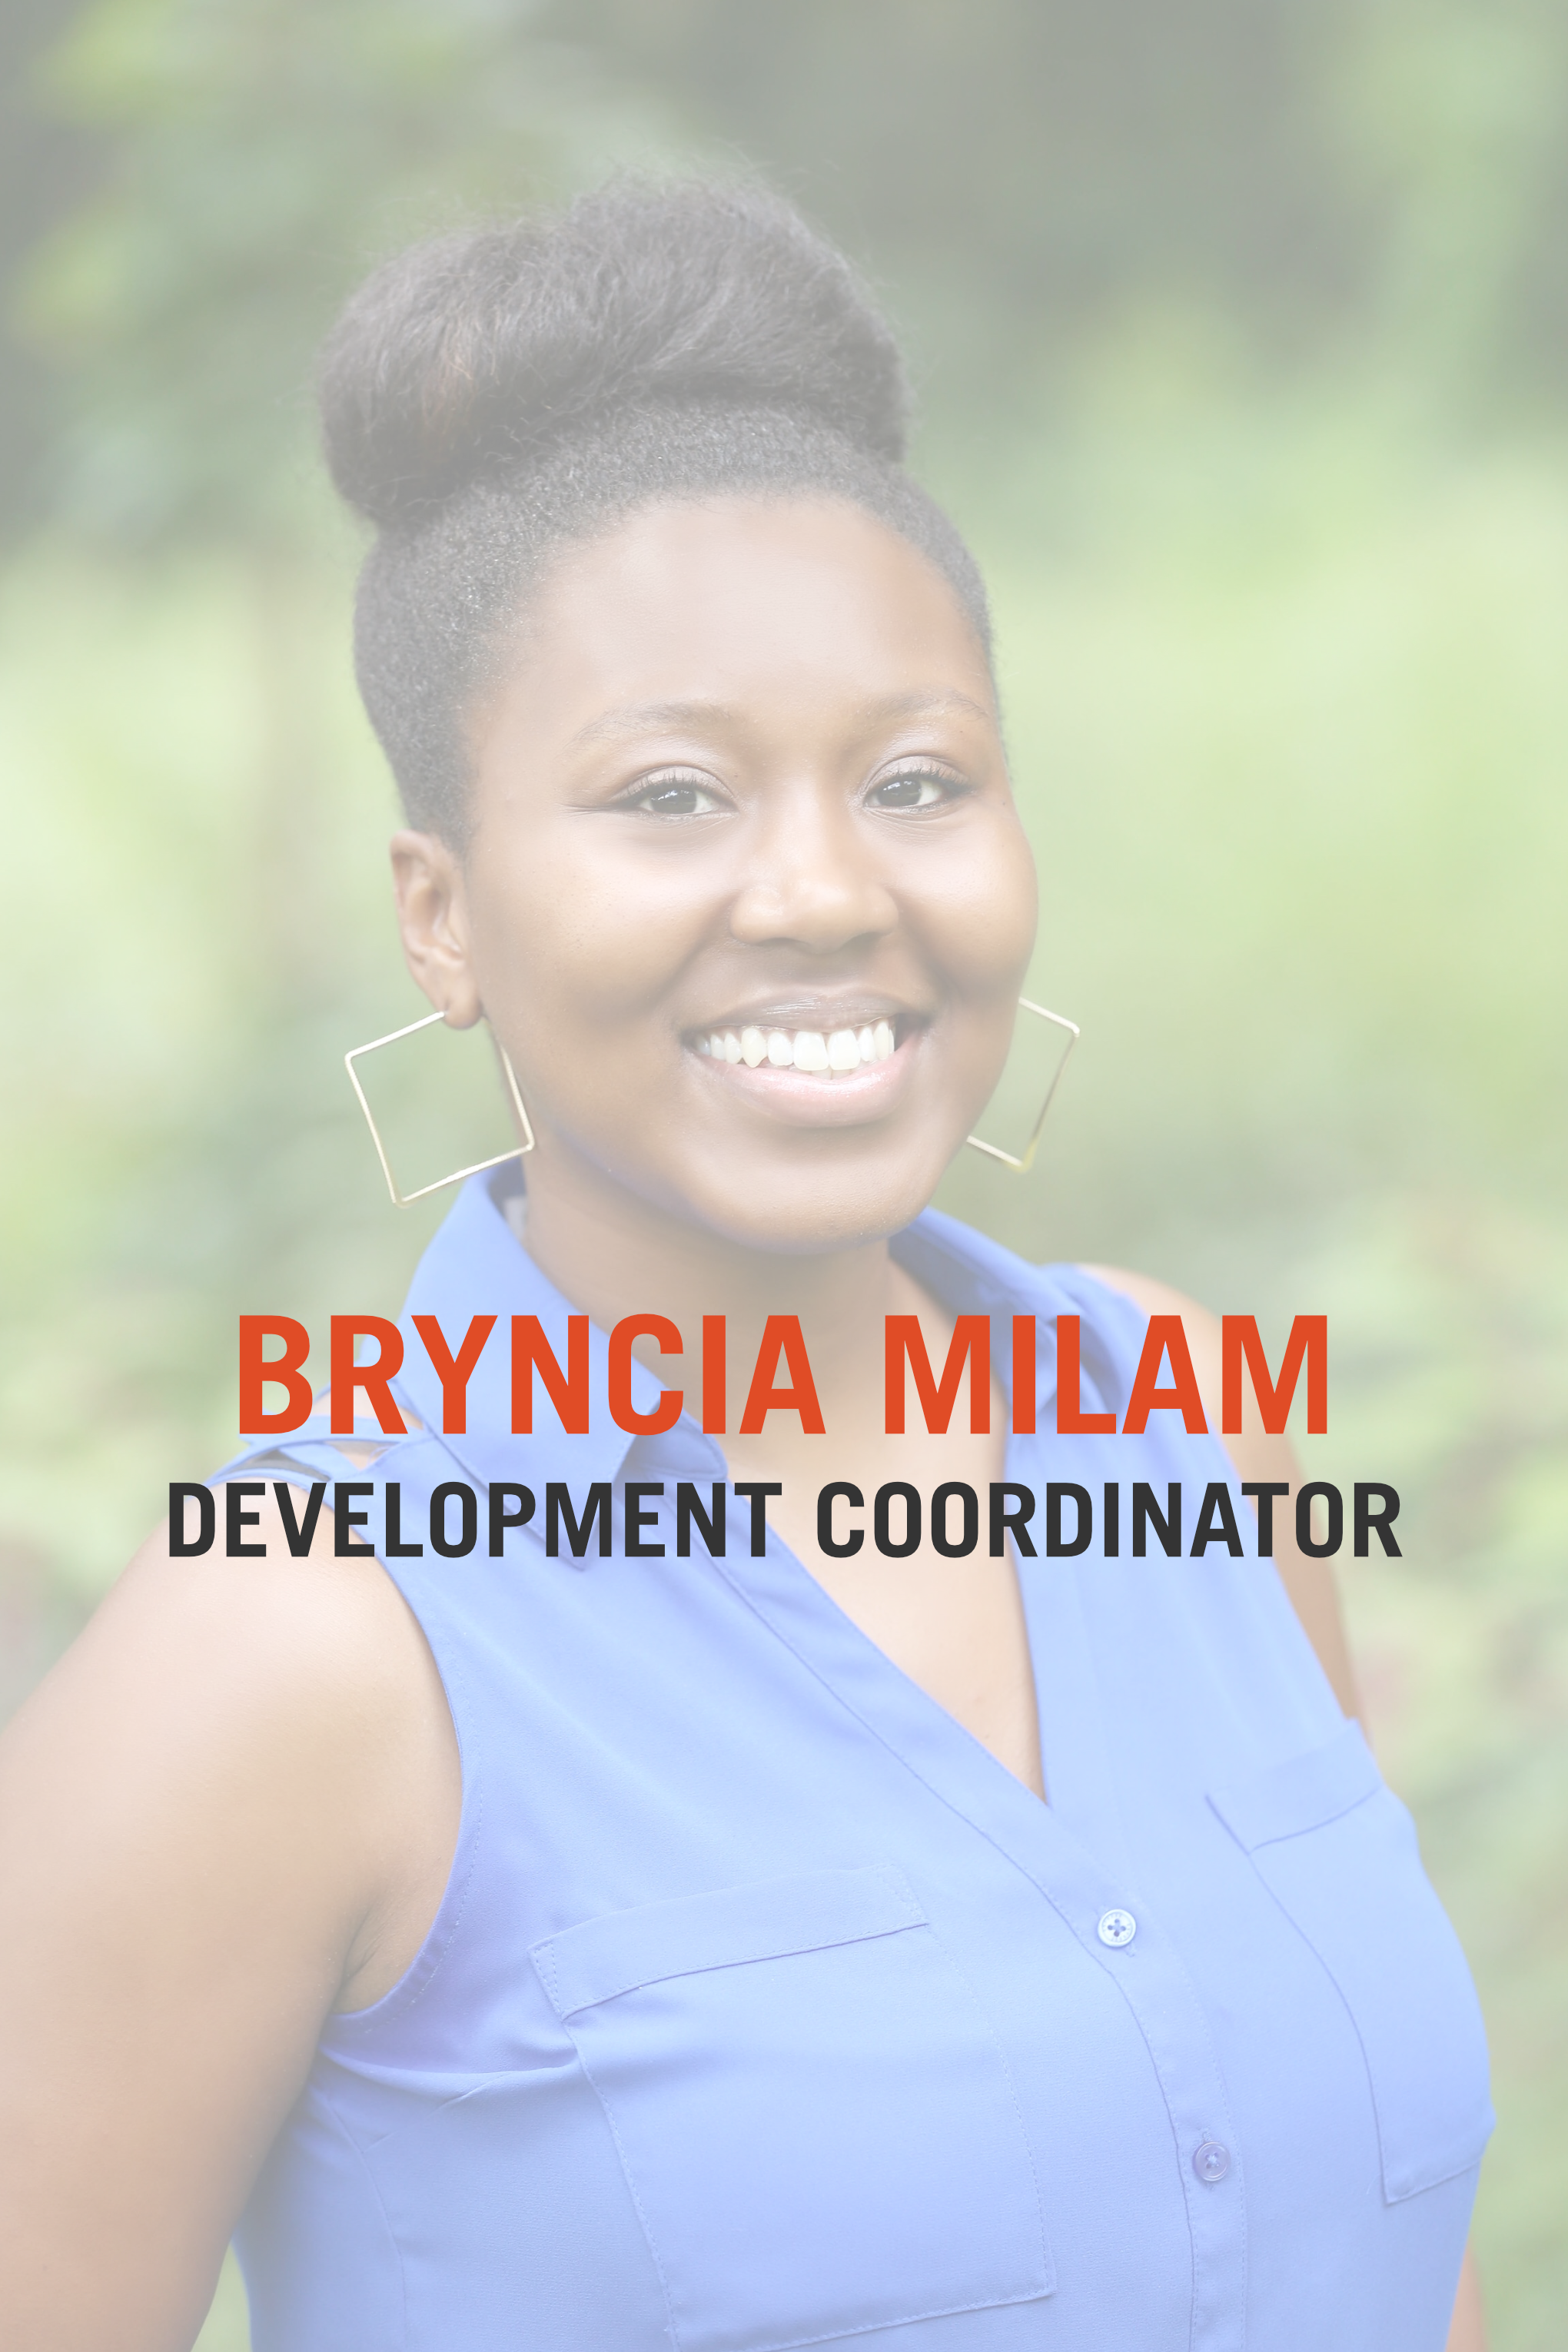 BRYNCIA MILAM TITLE.png